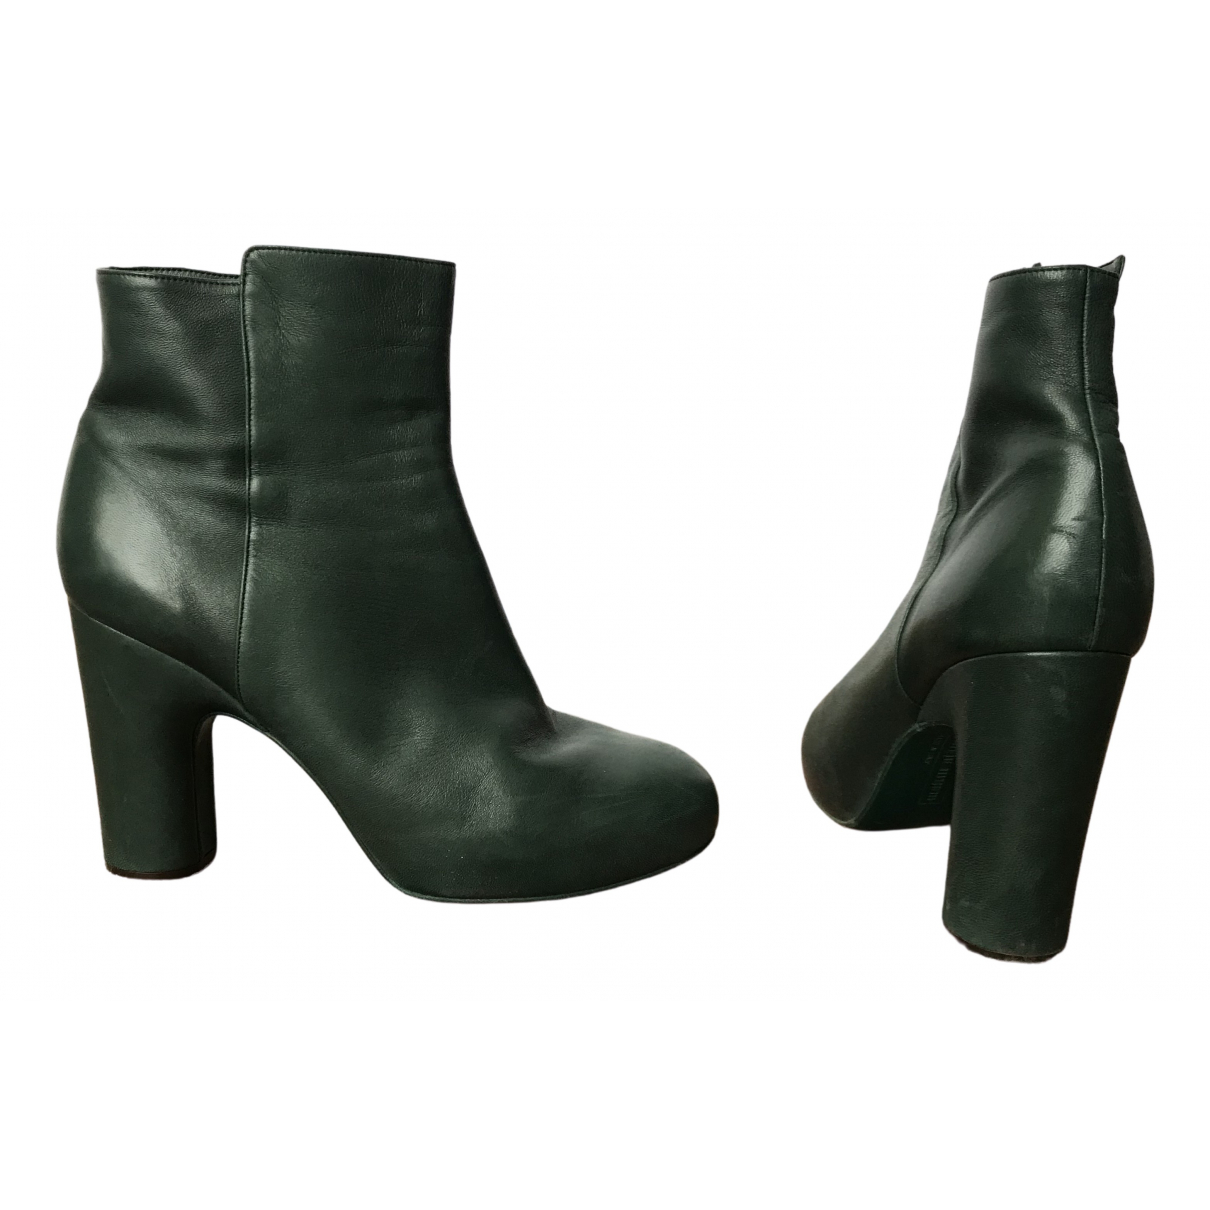 Véronique Branquinho \N Green Leather Ankle boots for Women 40 EU